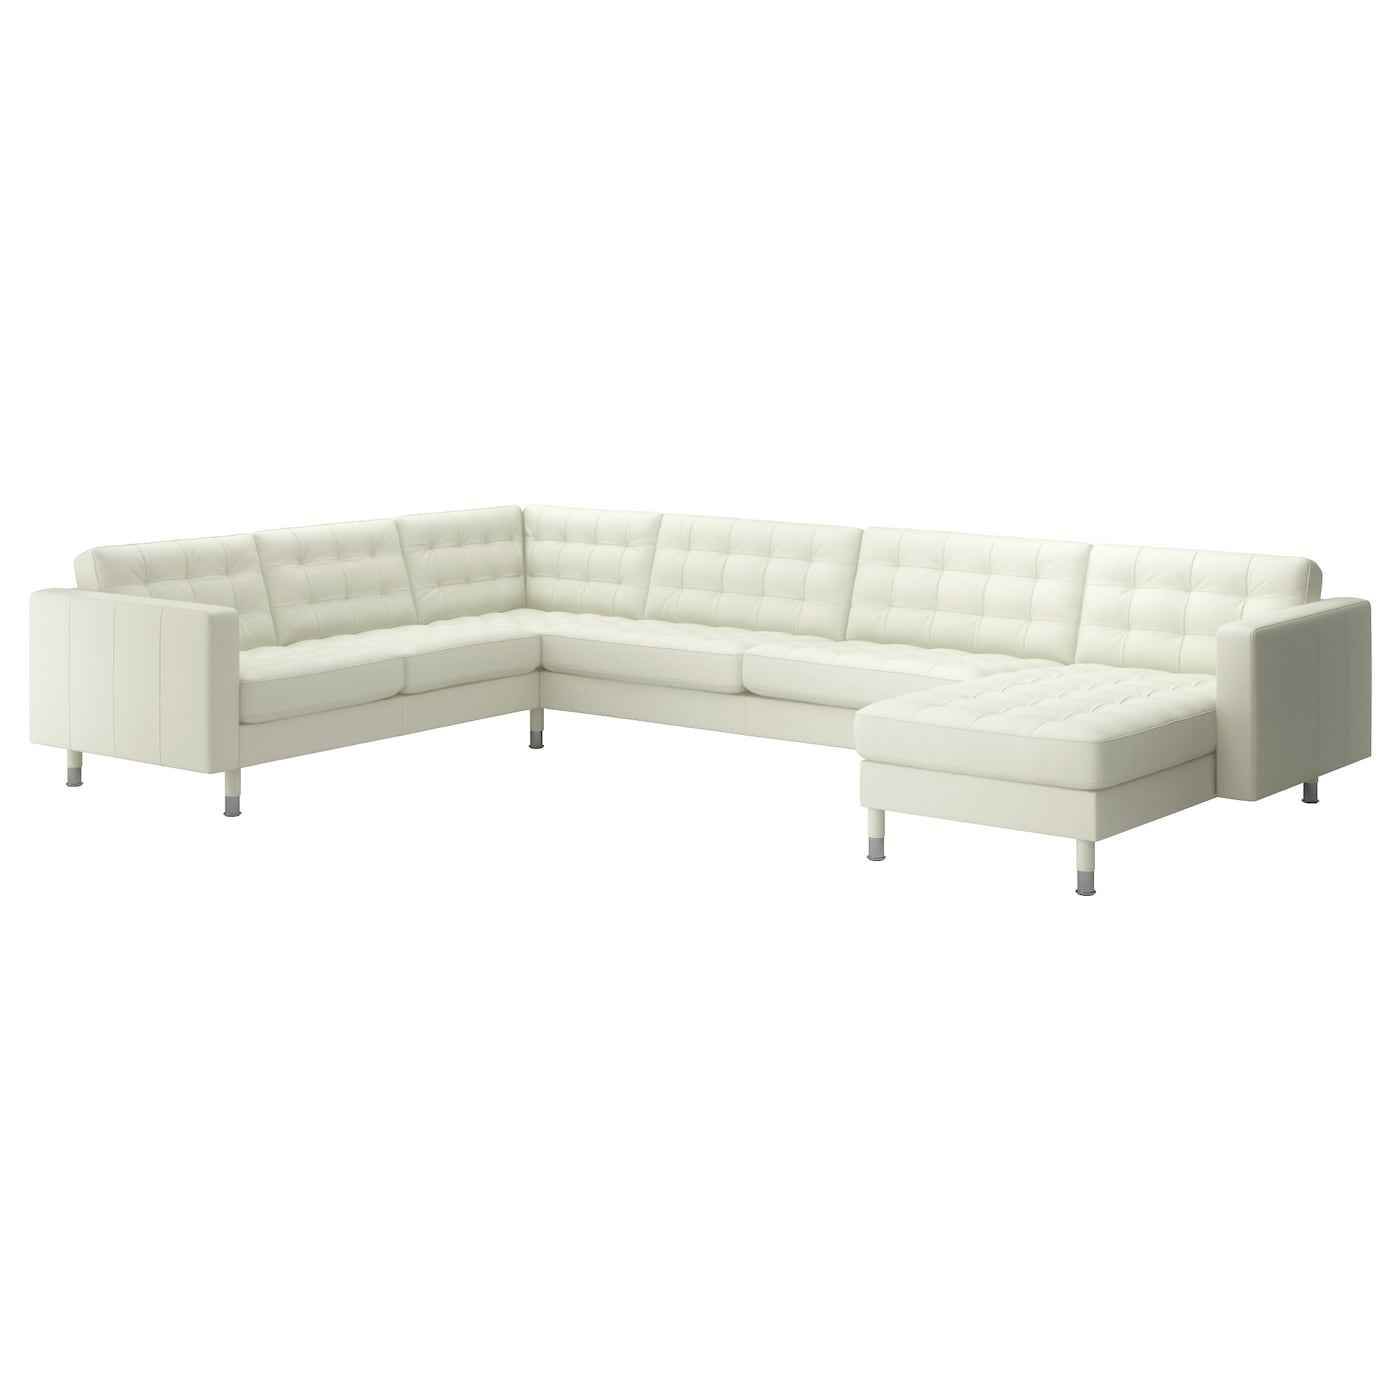 Landskrona corner sofa 23 32 and chaise longue grann bomstad white metal ikea - Chaise longue jardin ikea ...